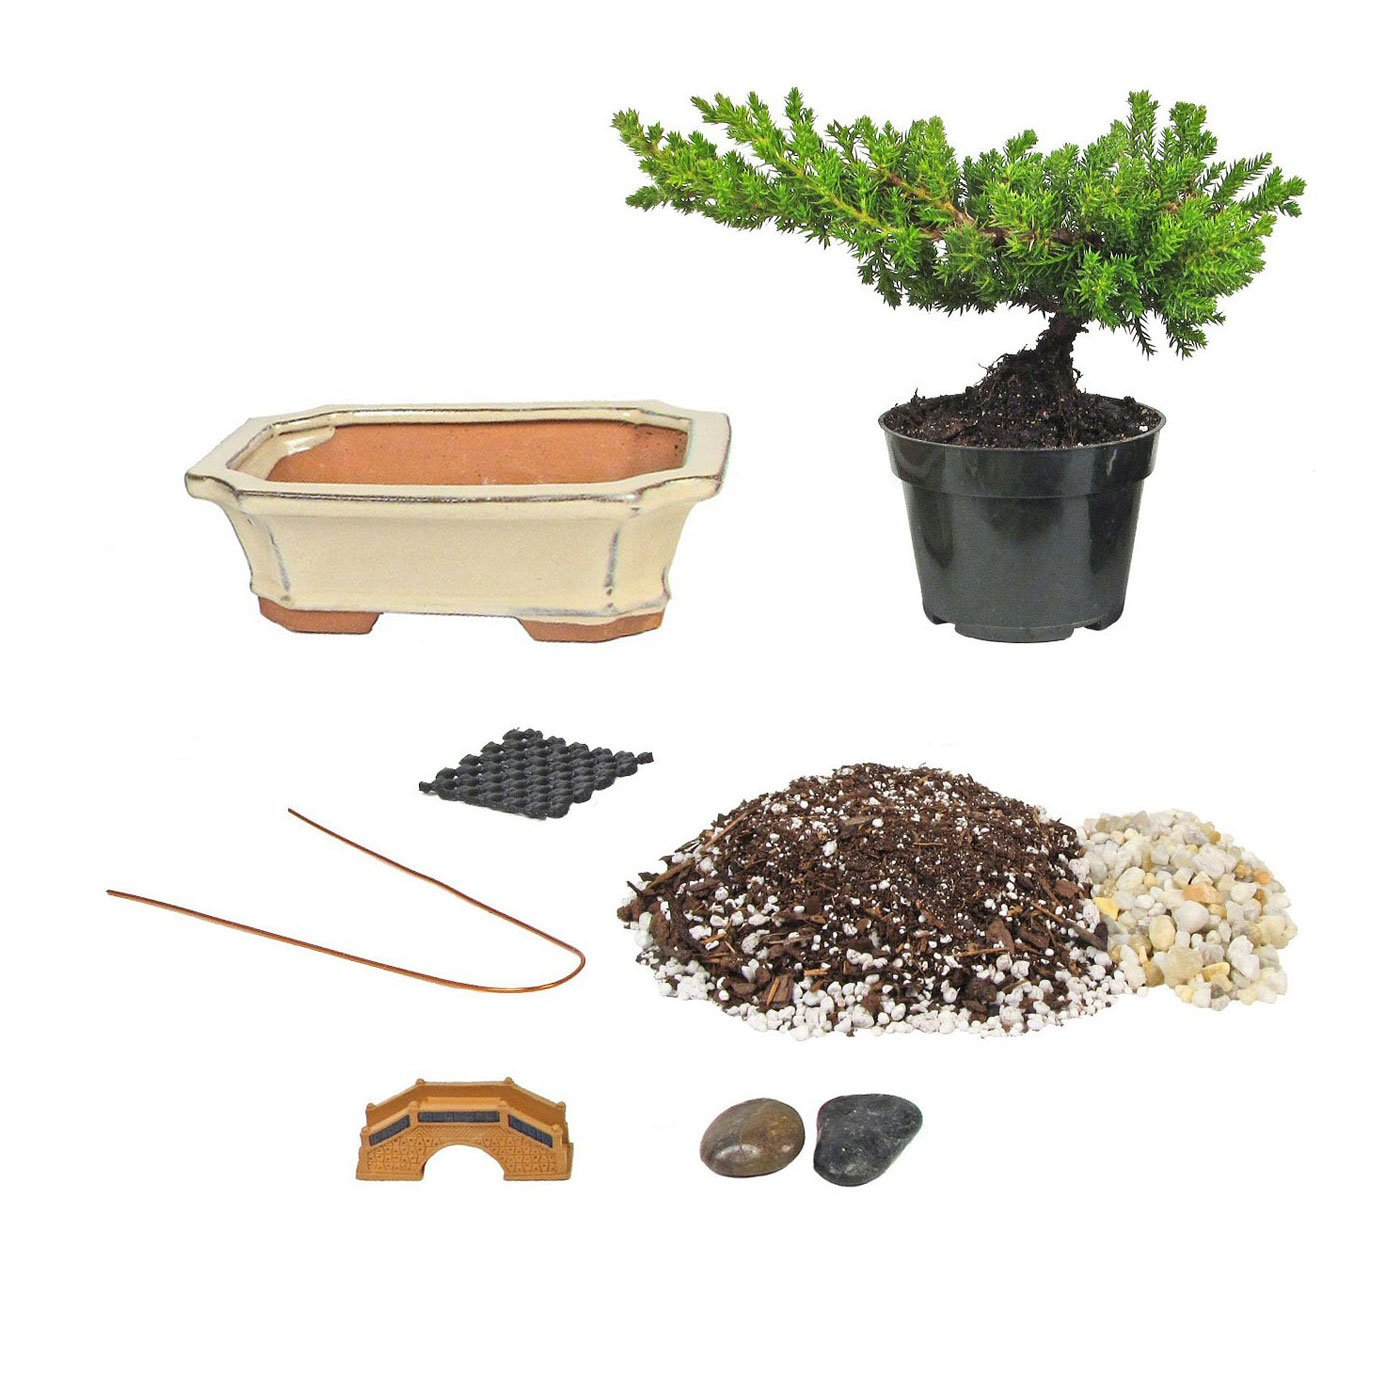 Eve's Bonsai Tree Starter Kit, Complete Do-It-Yourself Kit with 6 Year Old Small Japanese Juniper